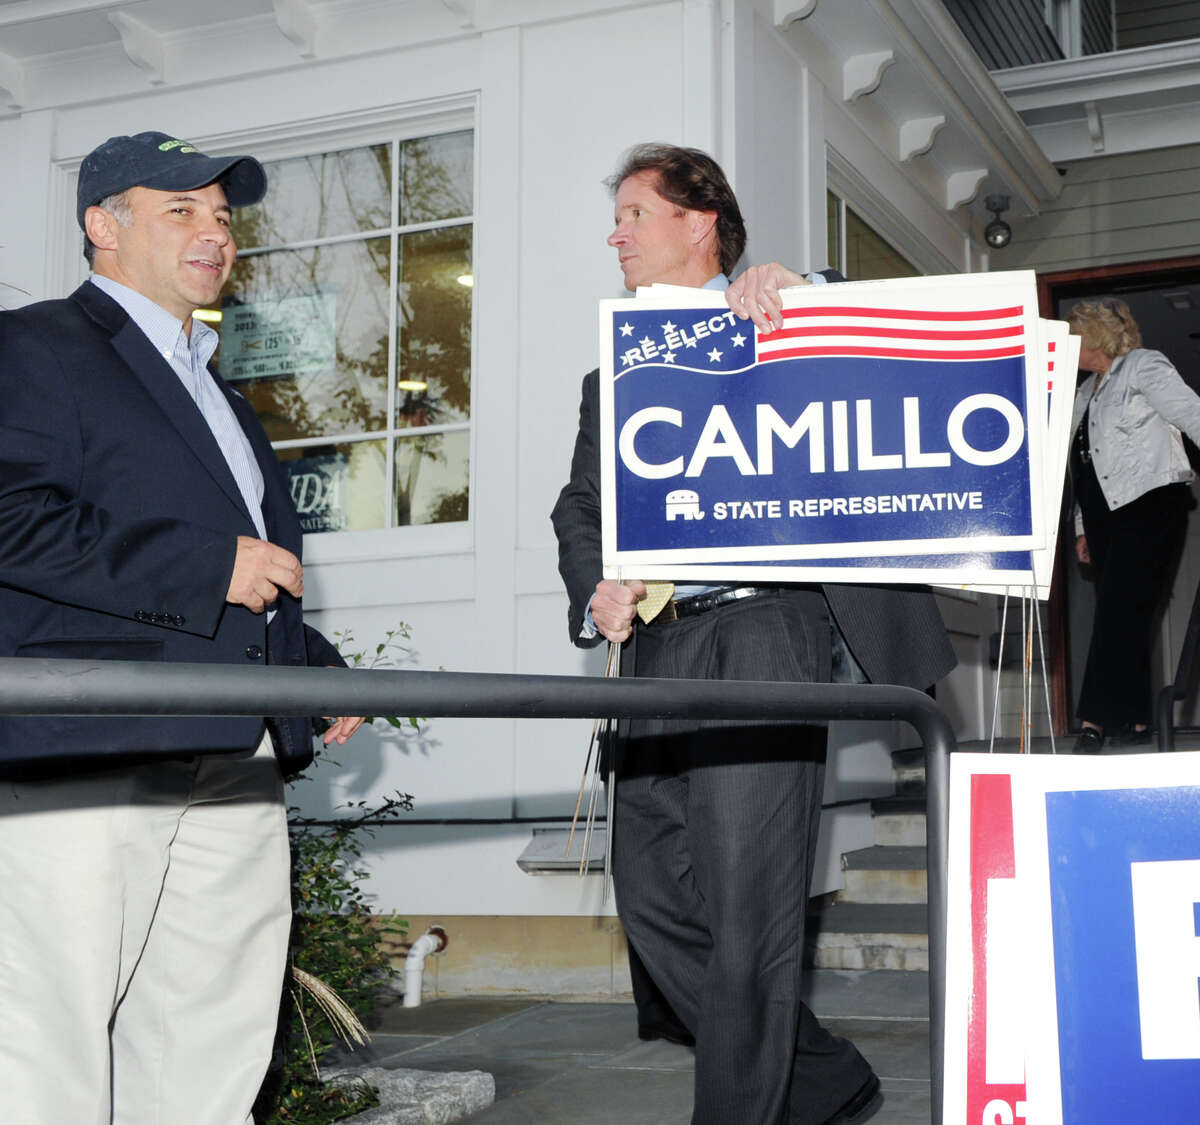 At left, State Rep. Alfred Camillo, R-151st District, speaks with state Sen. L. Scott Frantz, R-36th District, as Frantz holds re-elect Camillo for state representative signs during the opening of the Greenwich Republicans campaign headquarters at 1076 E. Putnam Ave., Riverside, Thursday, Oct. 11, 2012.